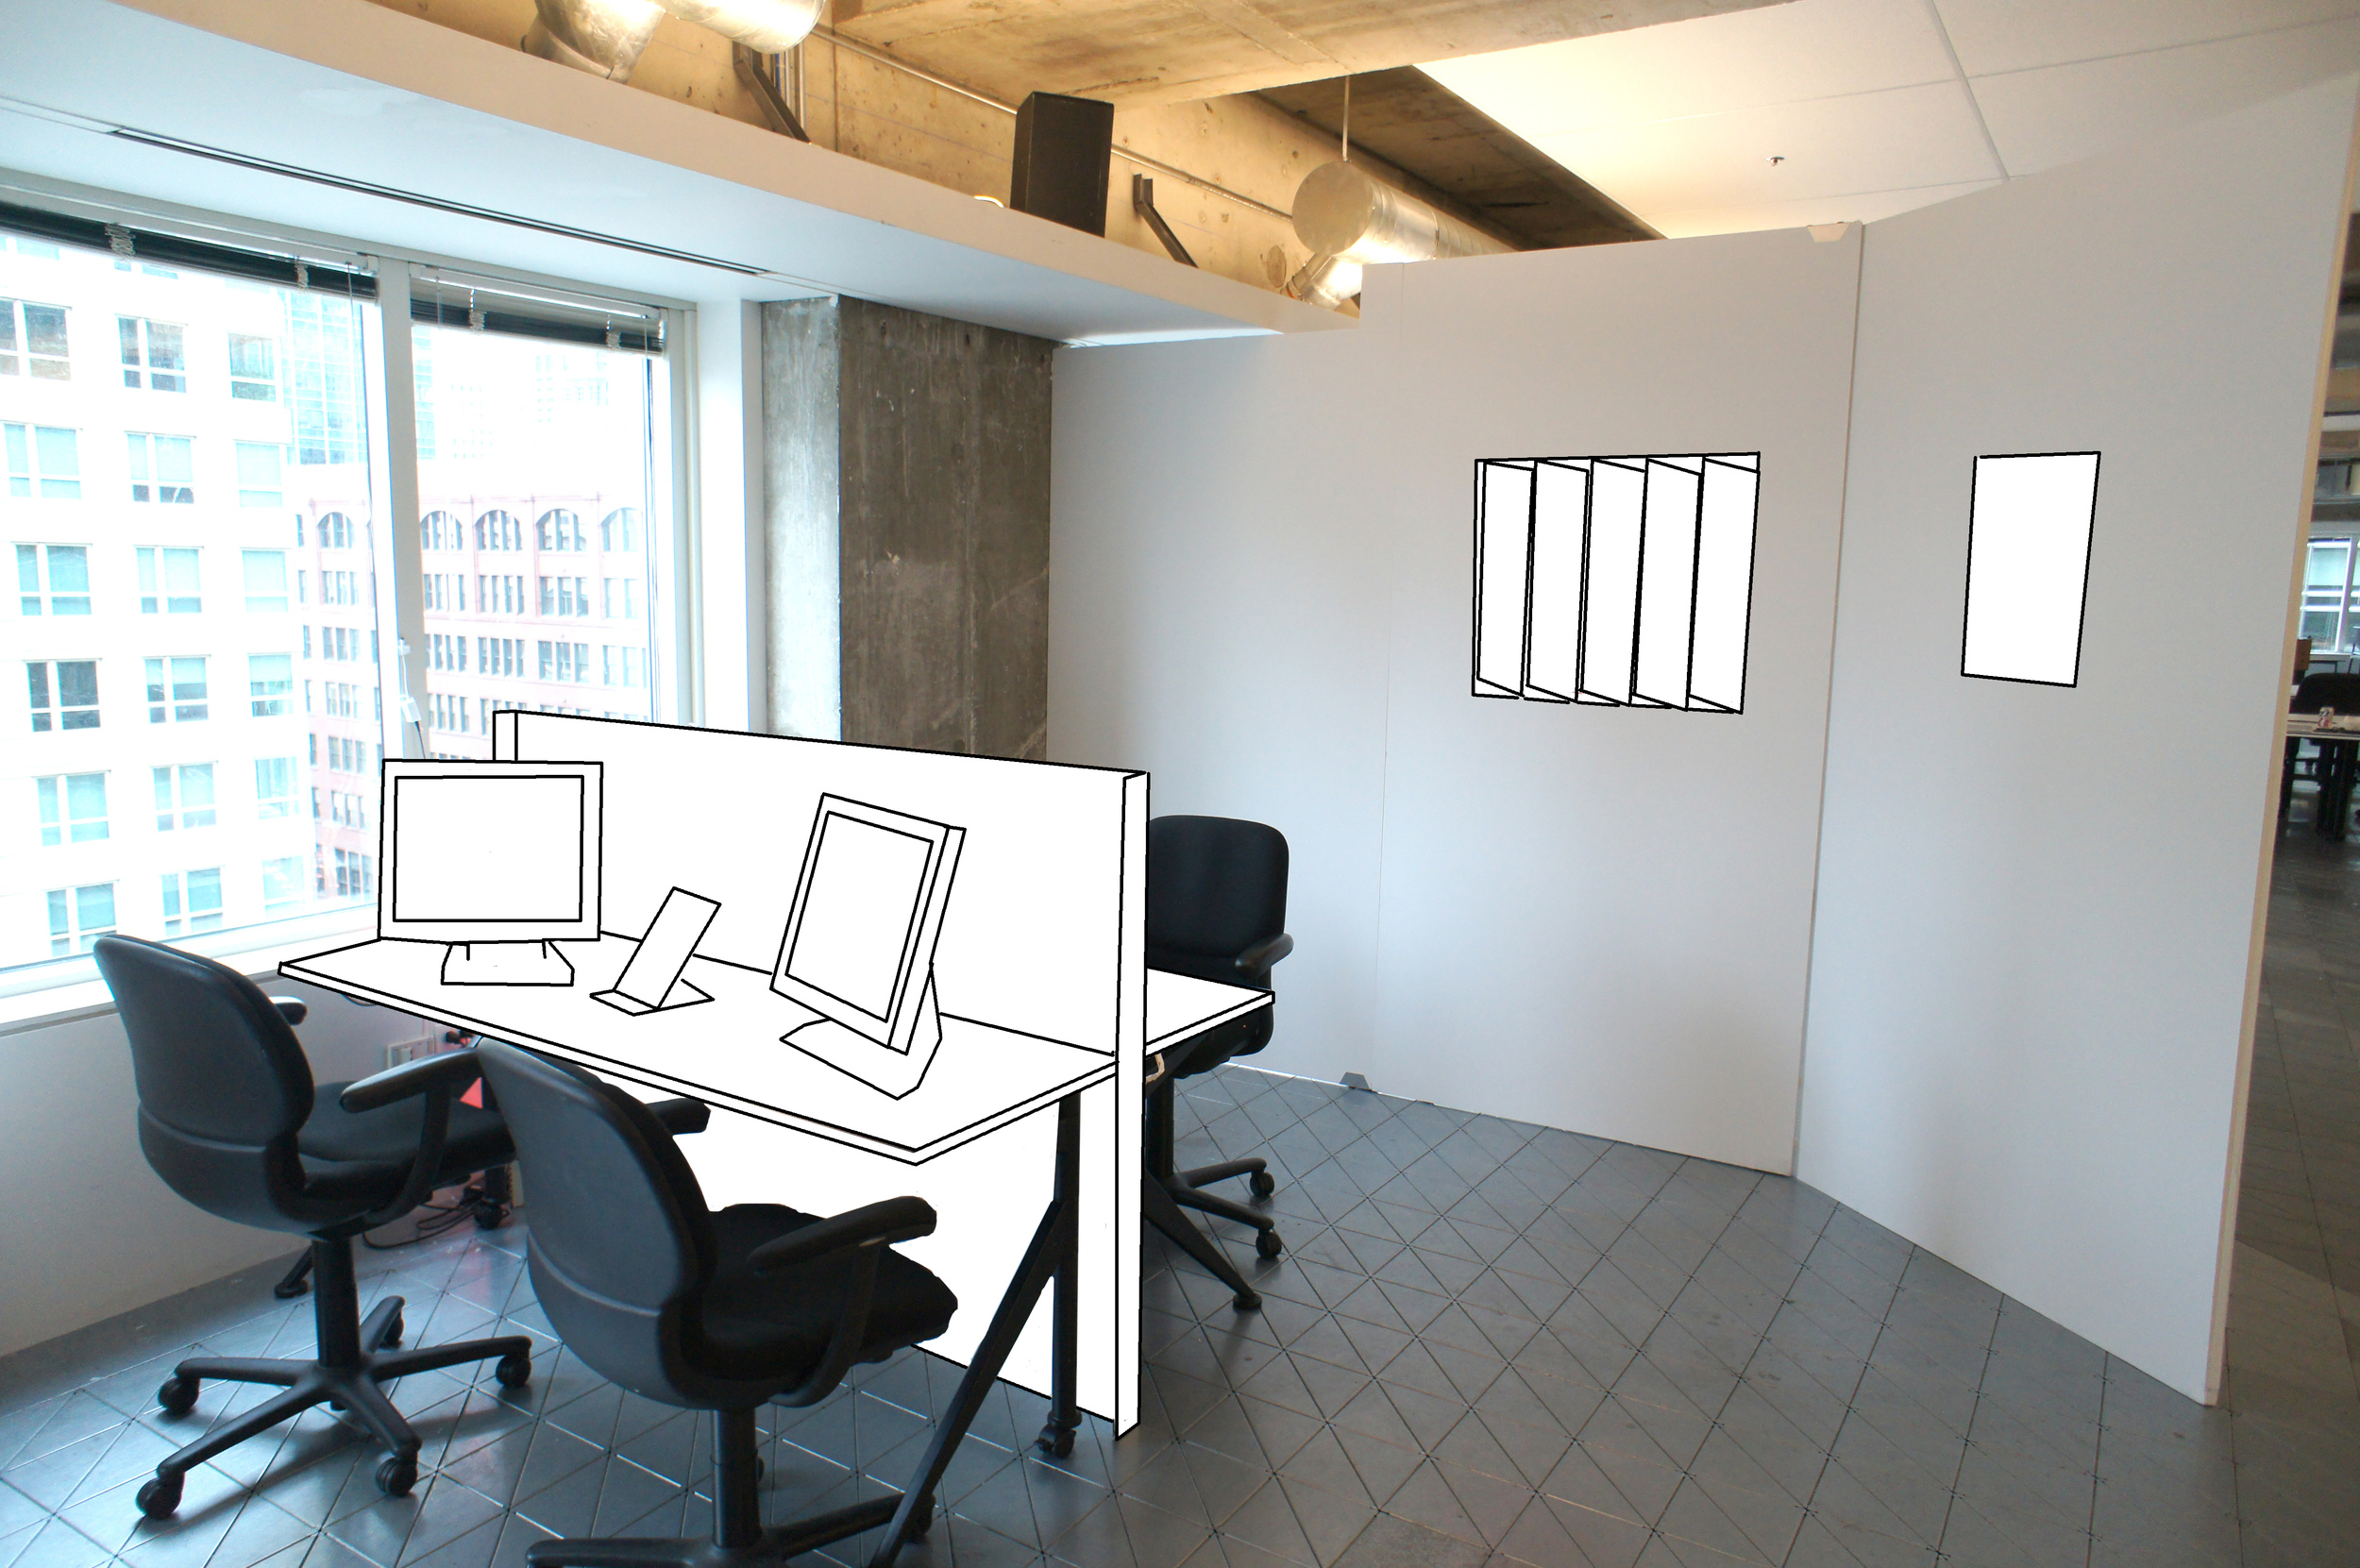 desk and wall prototypes.jpg